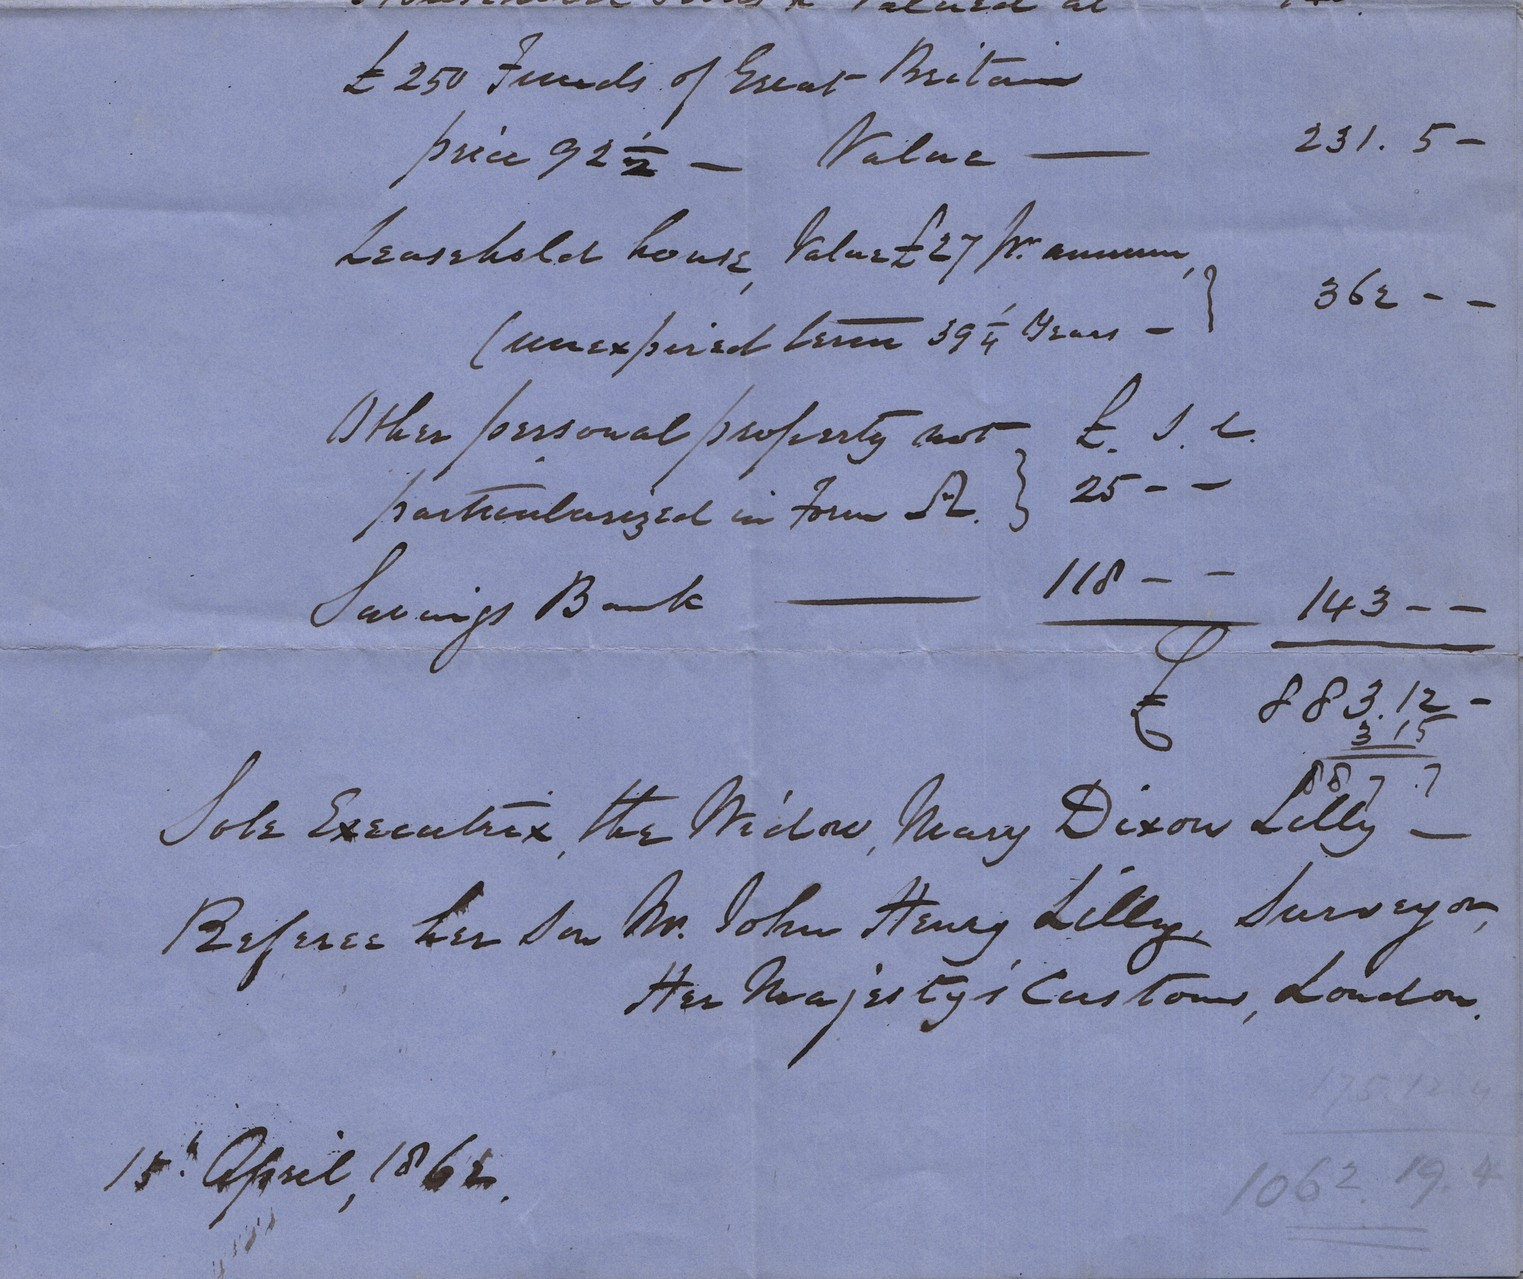 1862 James Lilly probate